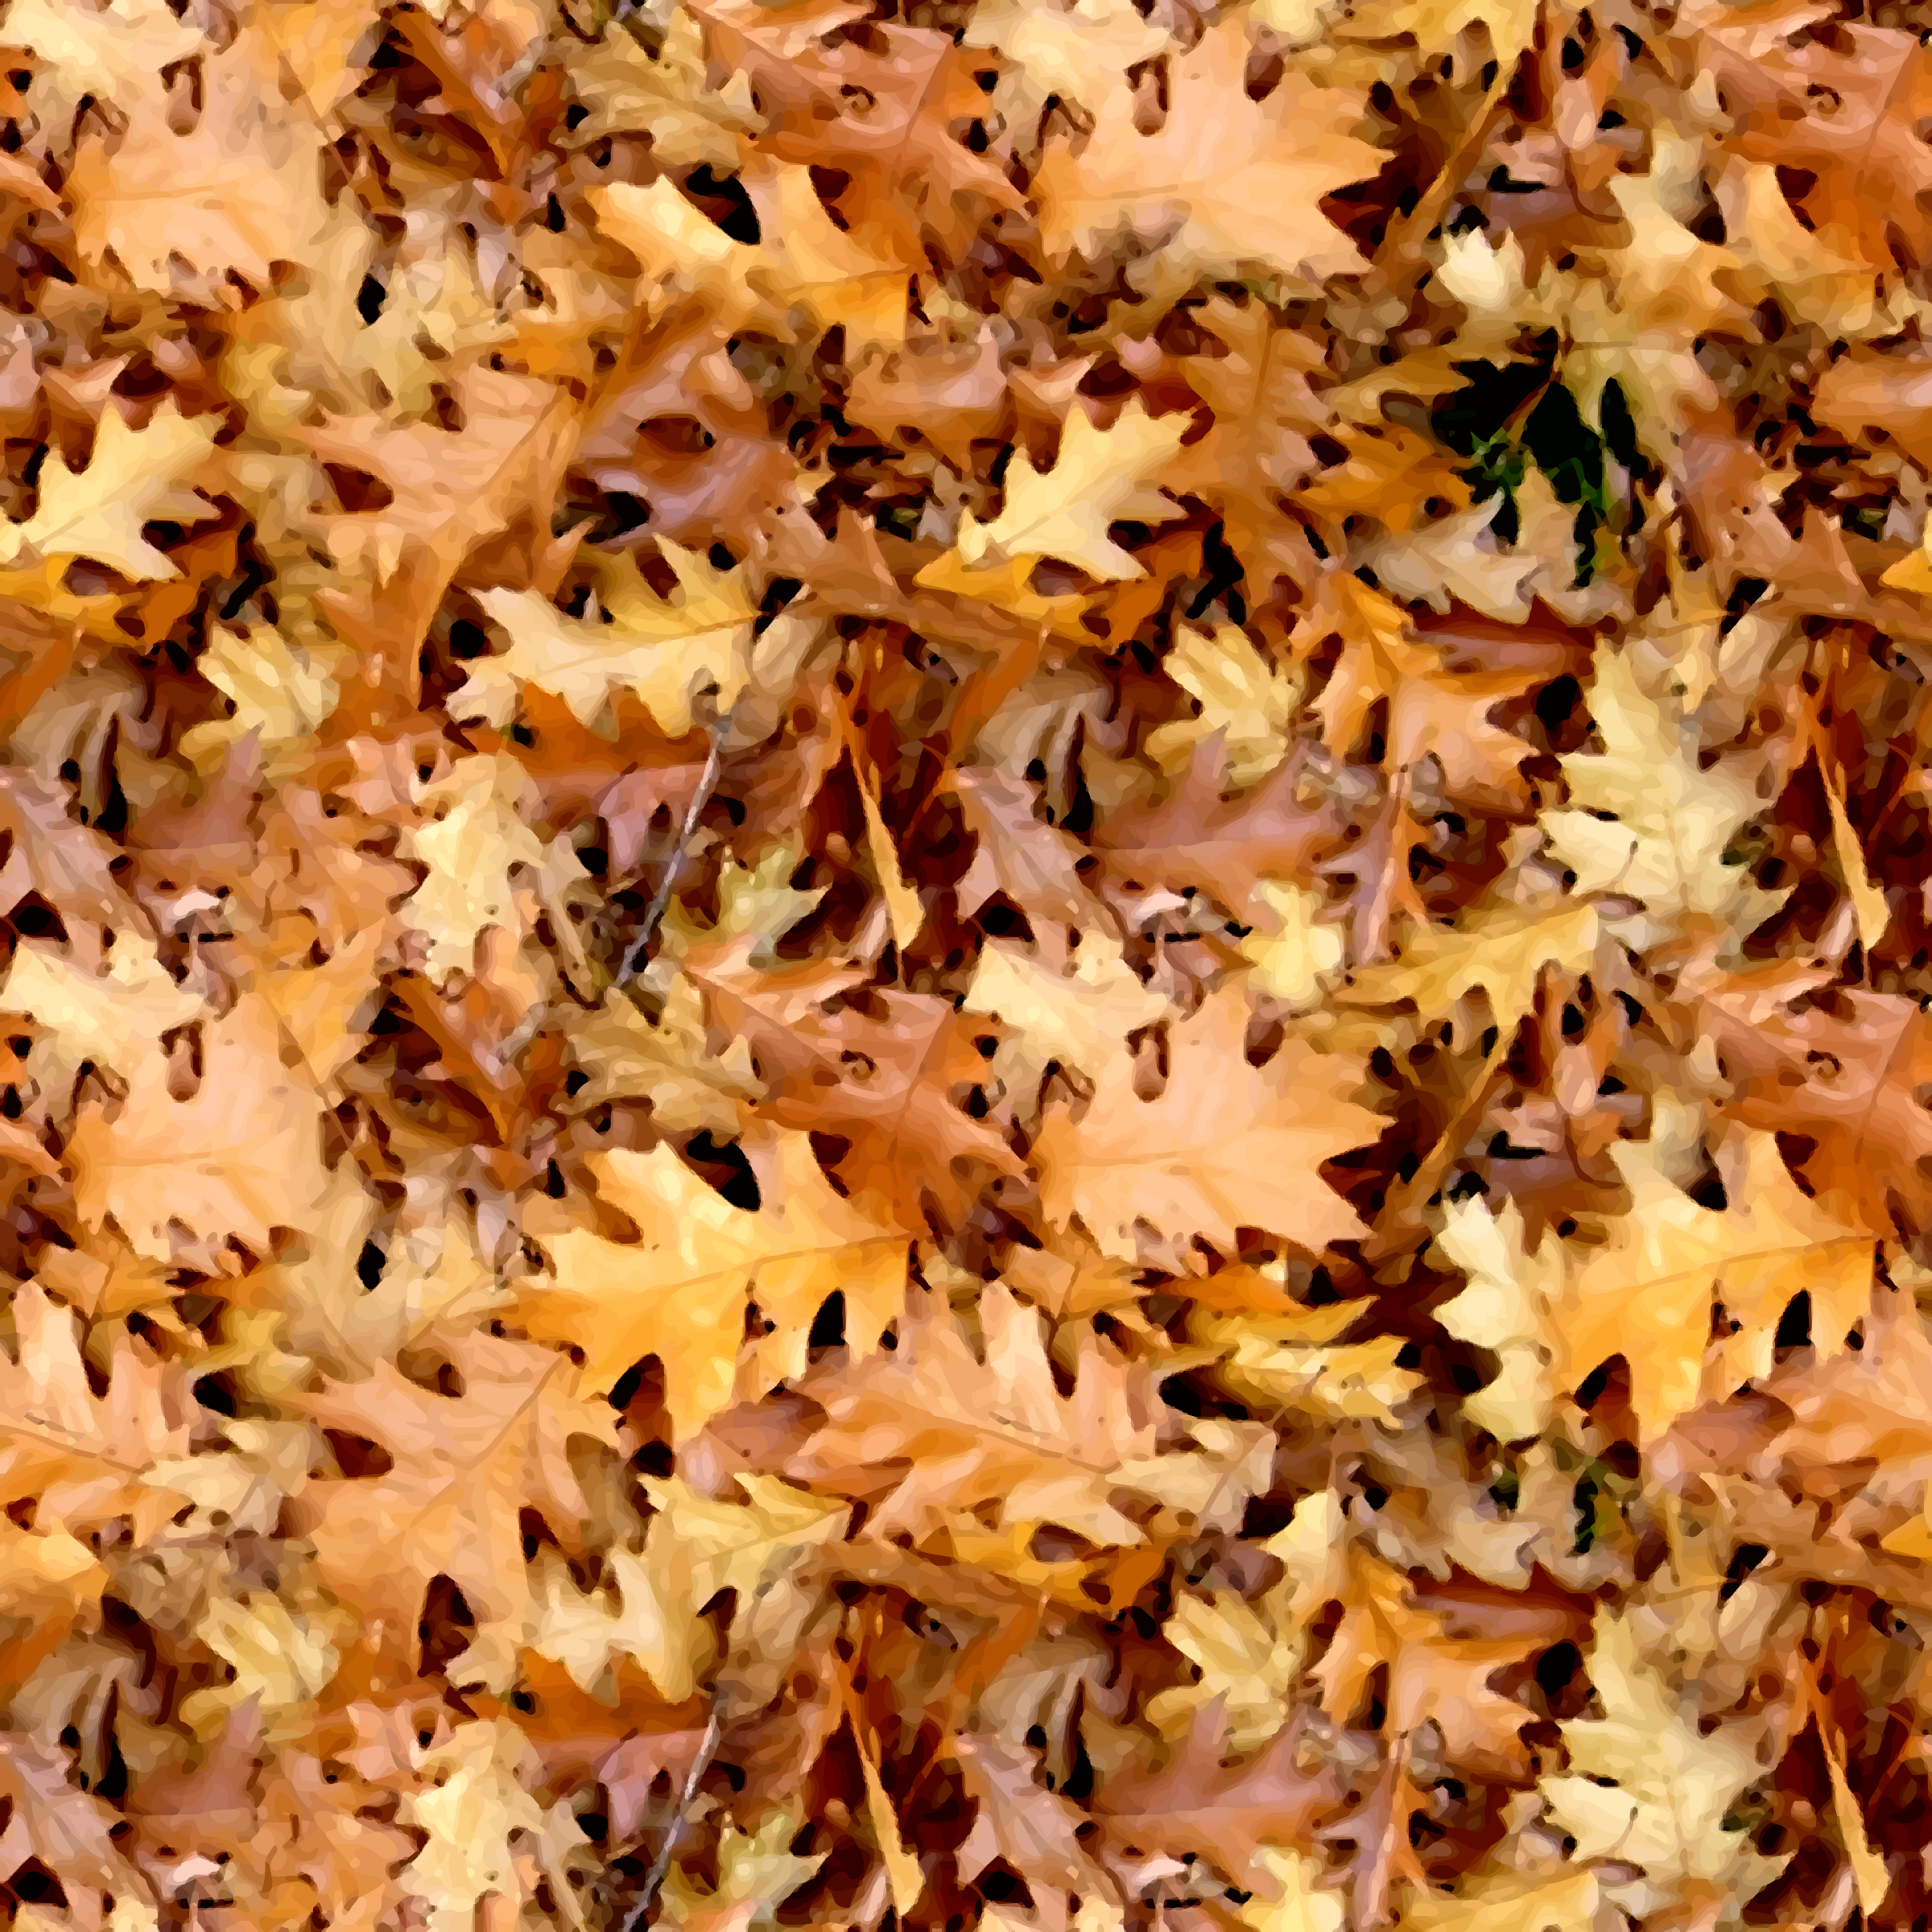 Autumn leaves 2 by Firkin